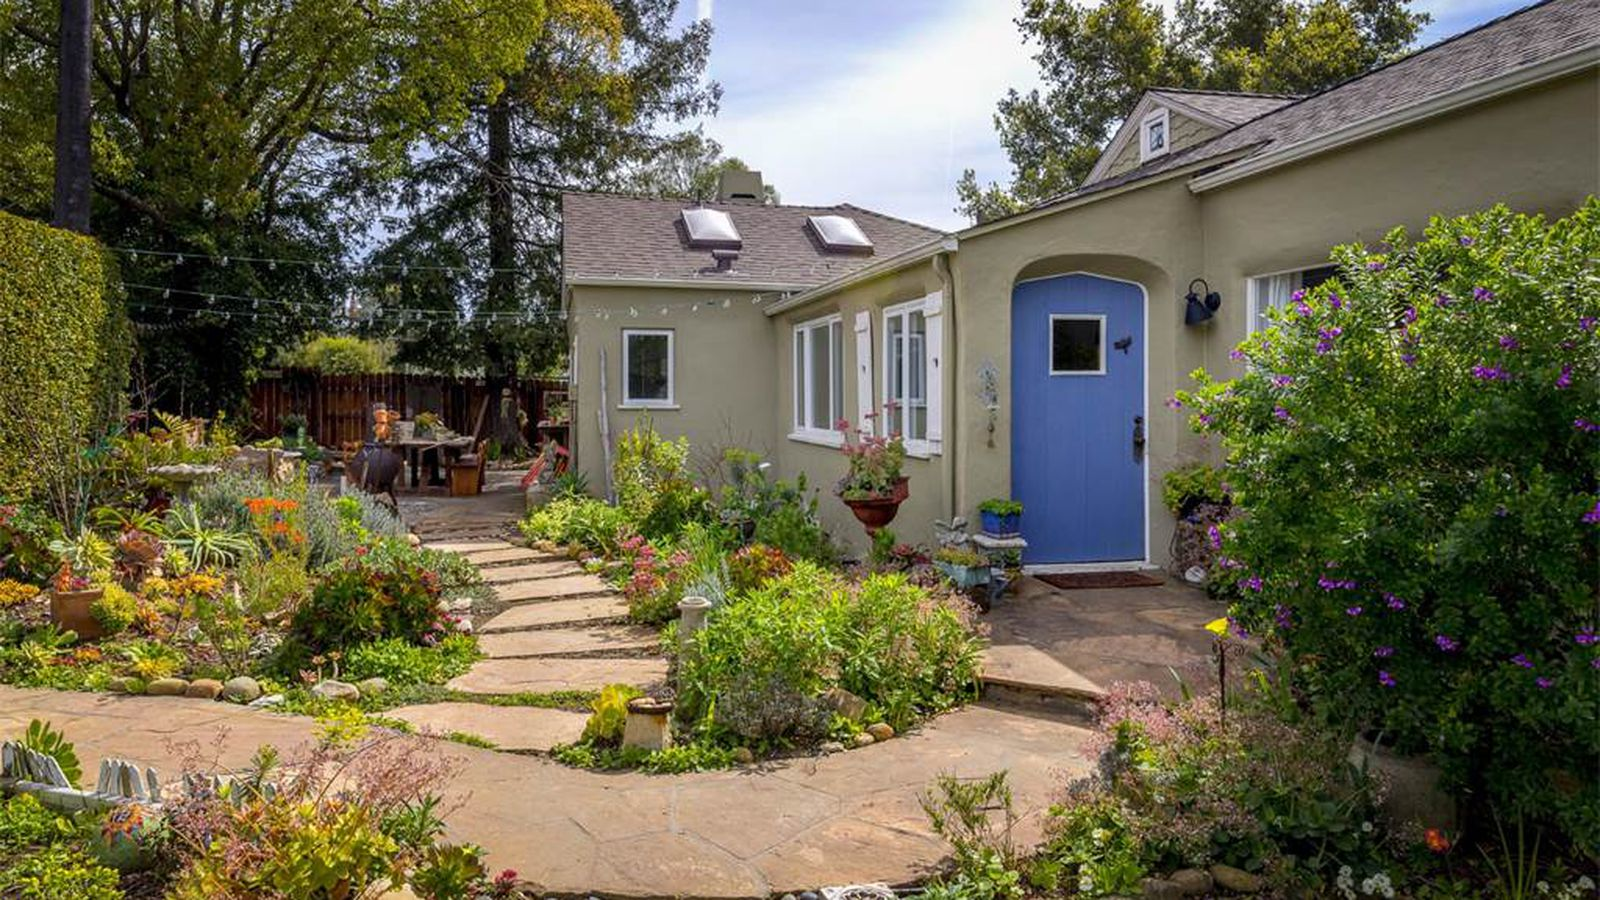 Inviting santa barbara cottage with art shed asks 2 3m for Tiny house santa barbara